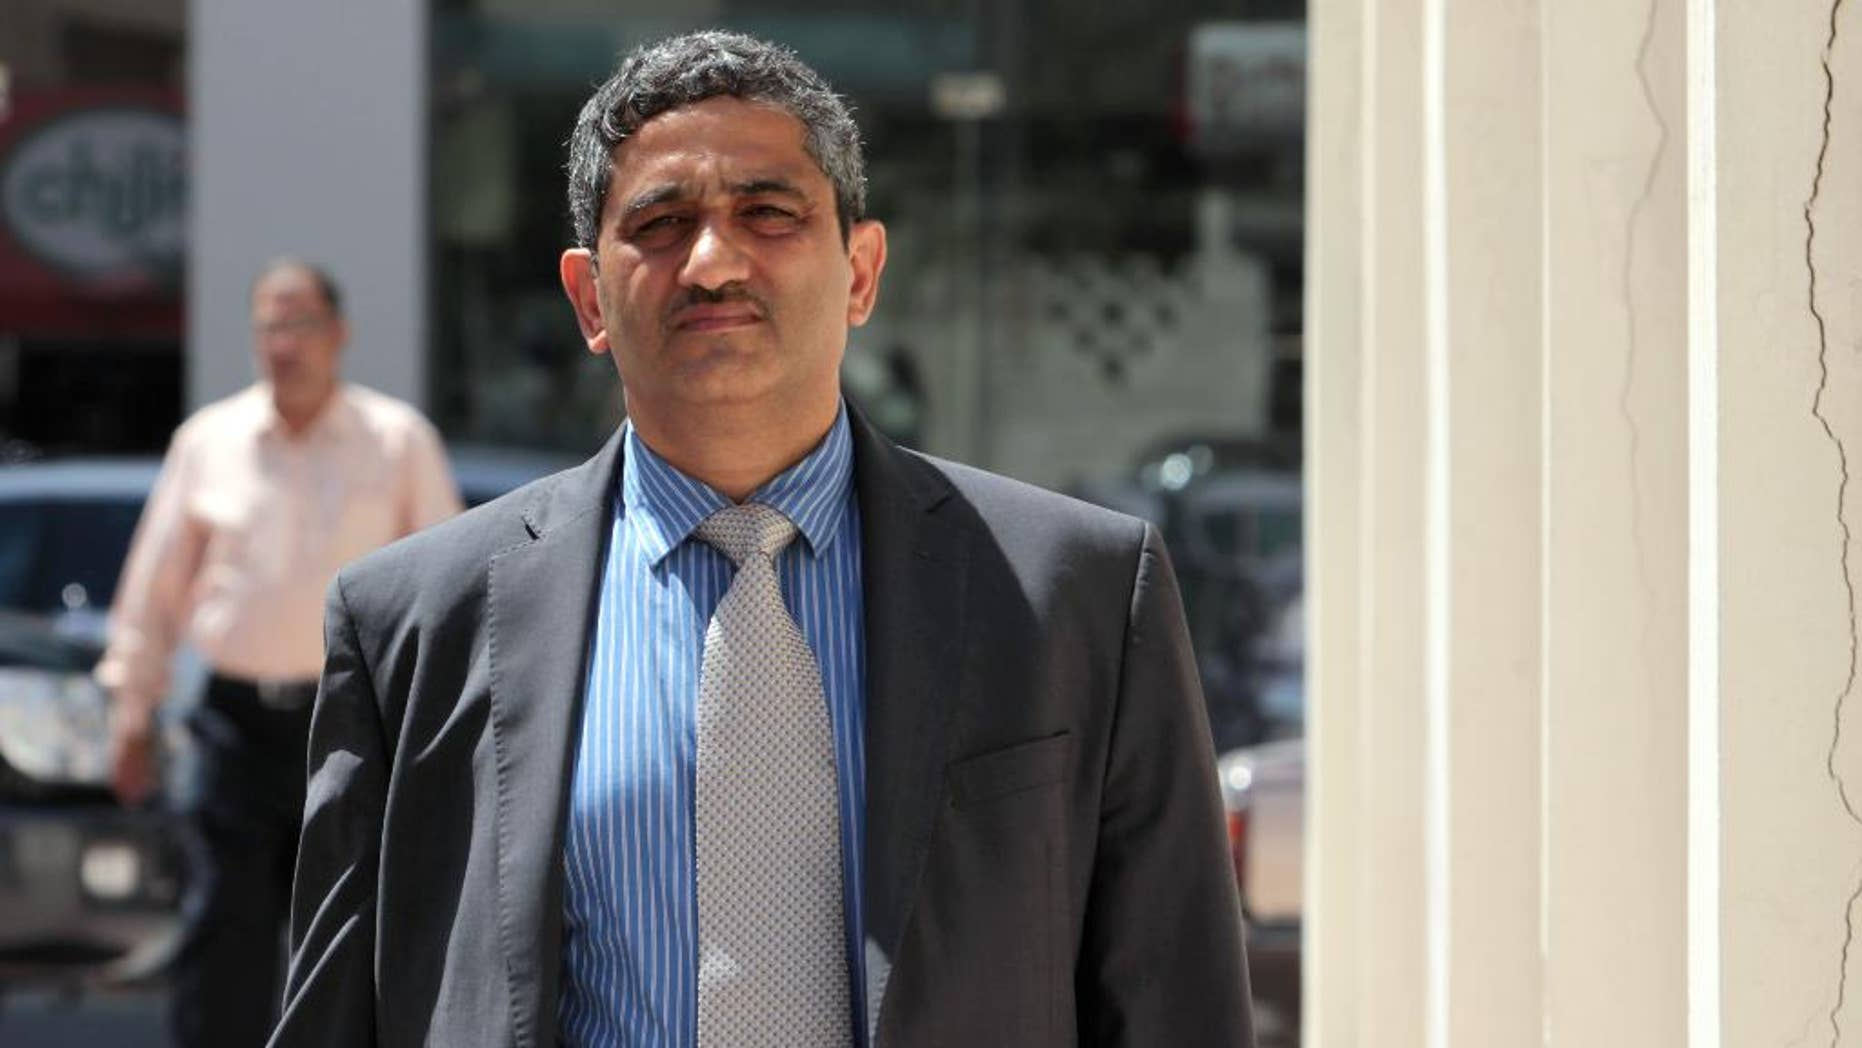 "FILE - In this May 18, 2011, file photo, Mansour al-Jamri, former chief editor of the Bahraini opposition newspaper Al Wasat, arrives at the courthouse in Manama, Bahrain. The official Bahrain News Agency said in a brief statement issued Thursday, Aug. 6, 2015, that the suspension of the publication of the independent newspaper Al-Wasat. is ""due to its violation of the law and repeated dissemination of information that affects national unity and the Kingdom's relationship with other countries."" (AP Photo/Hasan Jamali, File)"